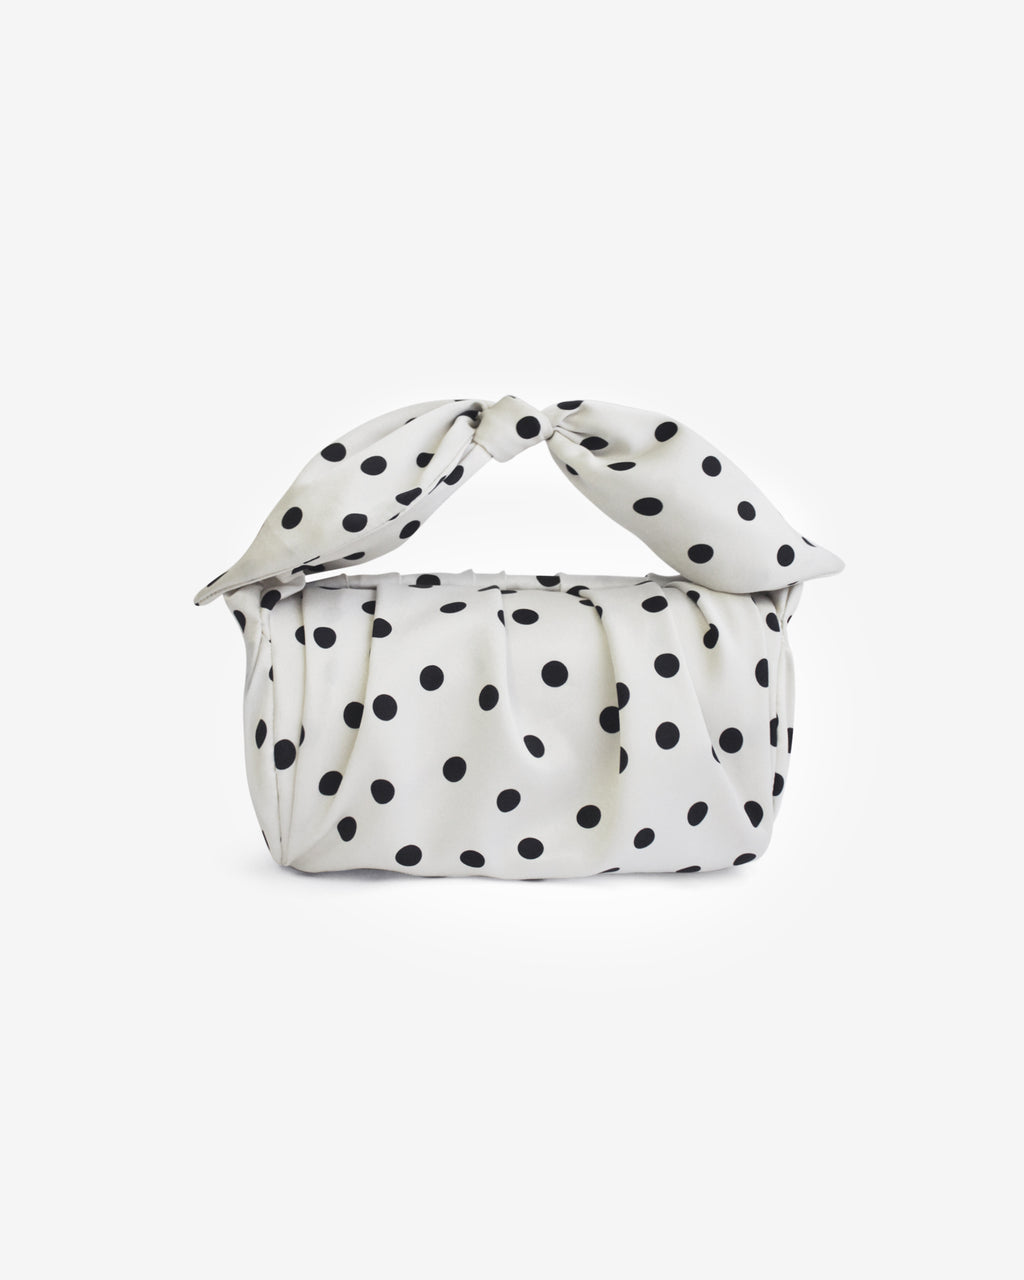 Nane Bag Satin Polka Dot Black and White